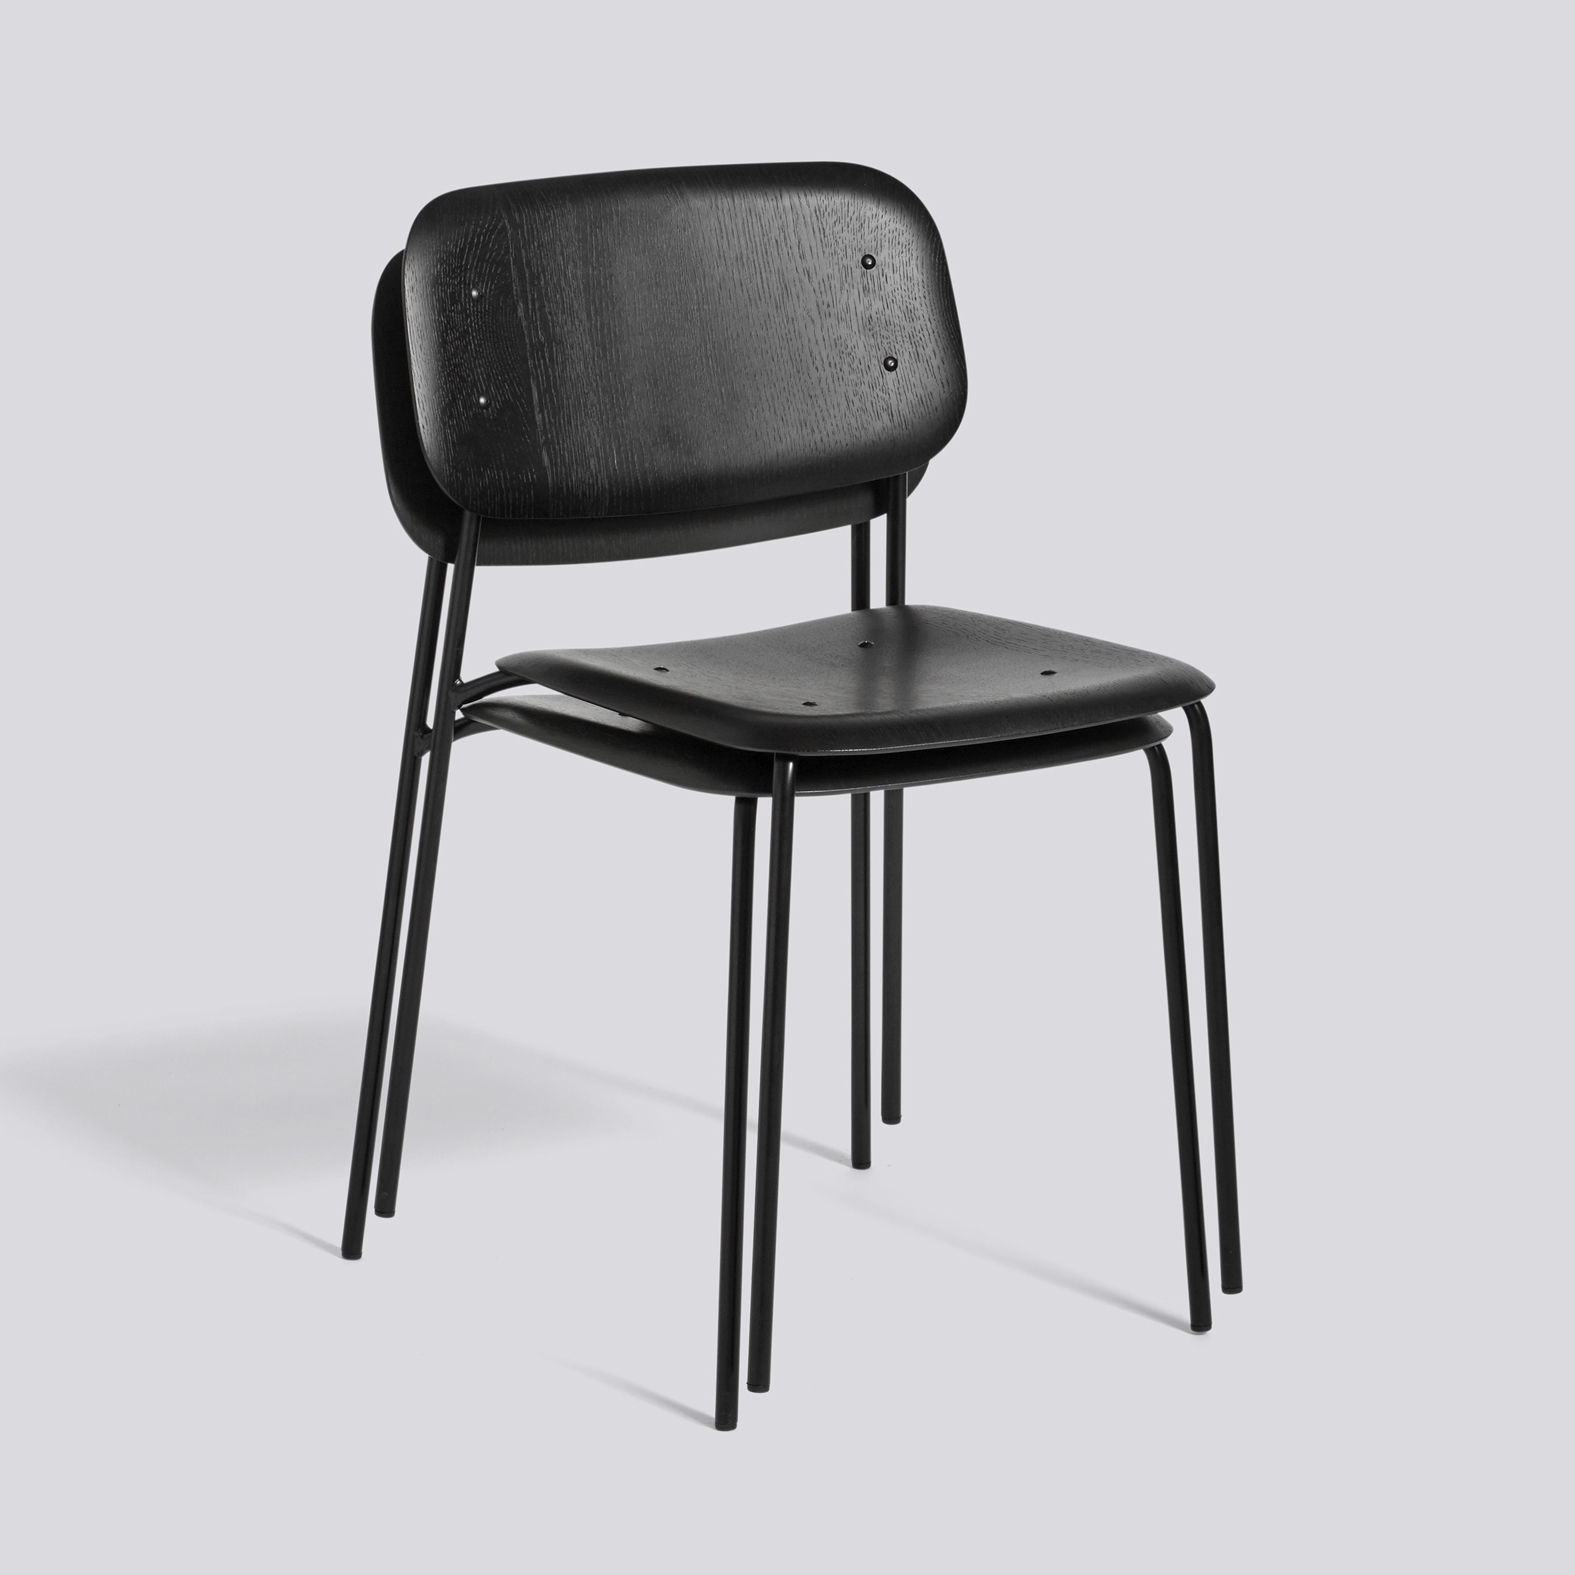 Soft Edge 10 Stacking chair Metal & wood Black by Hay